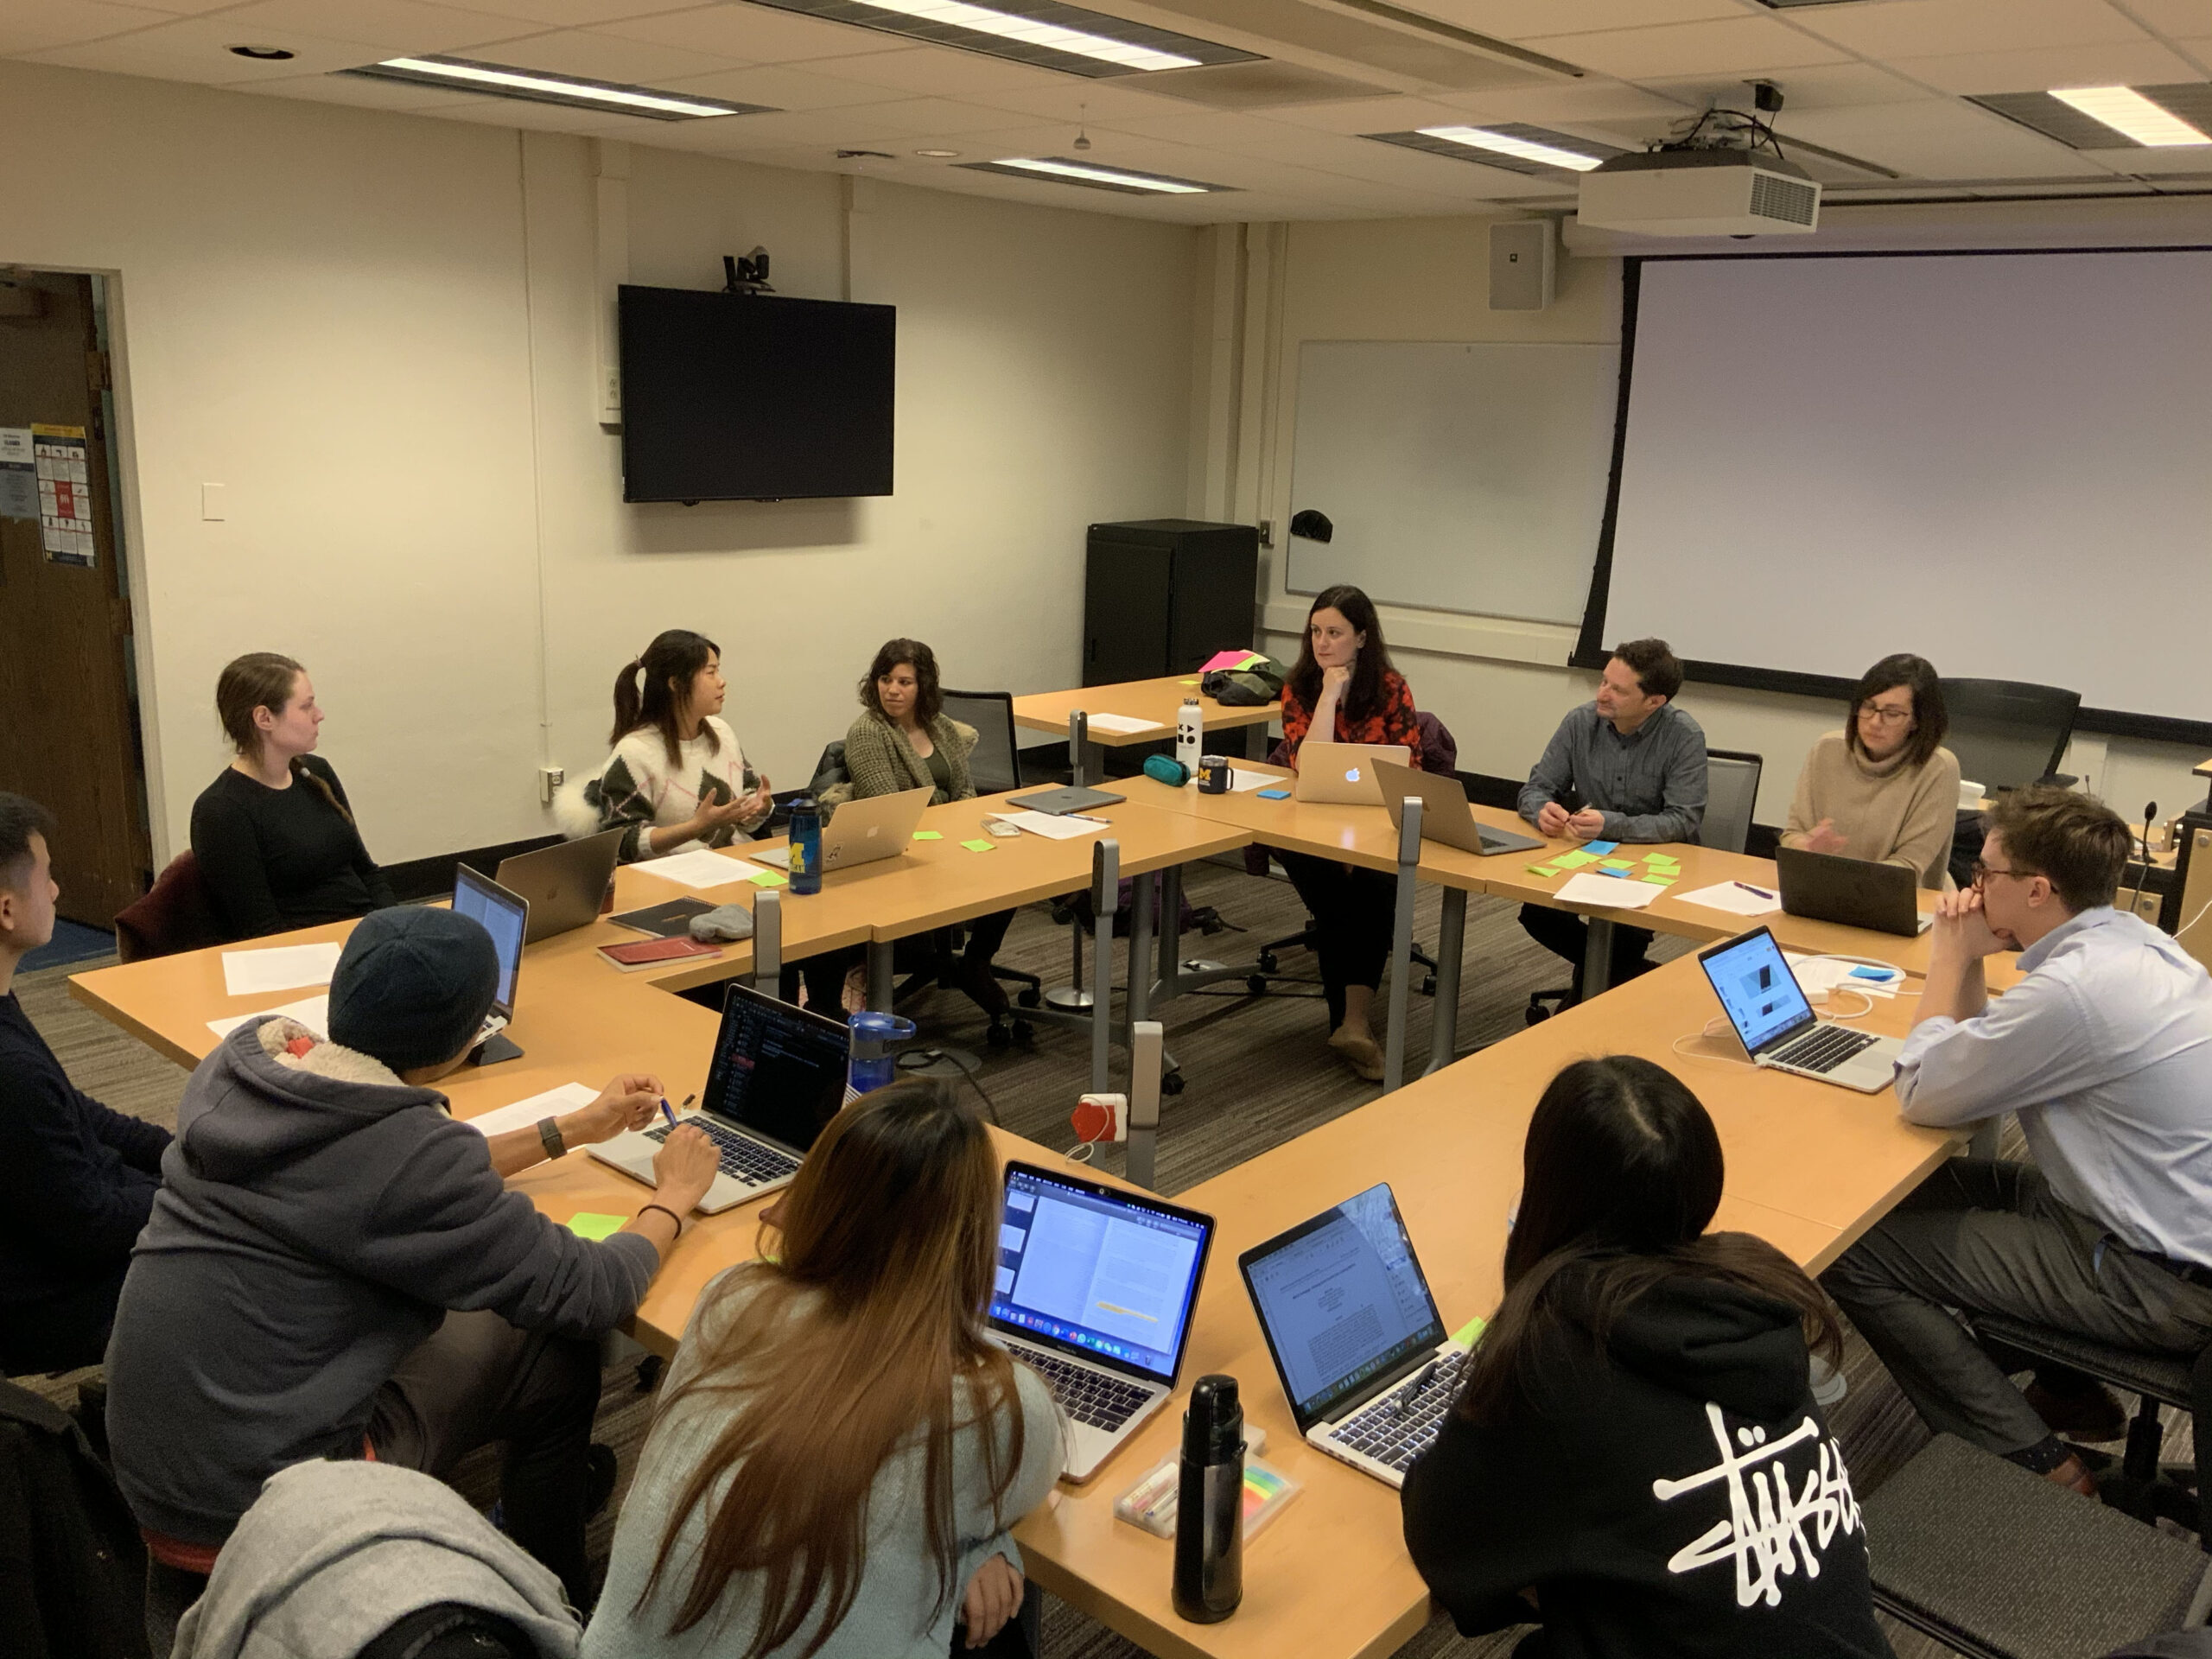 LX graduate certificate prepares students to create educational experiences with learners in mind